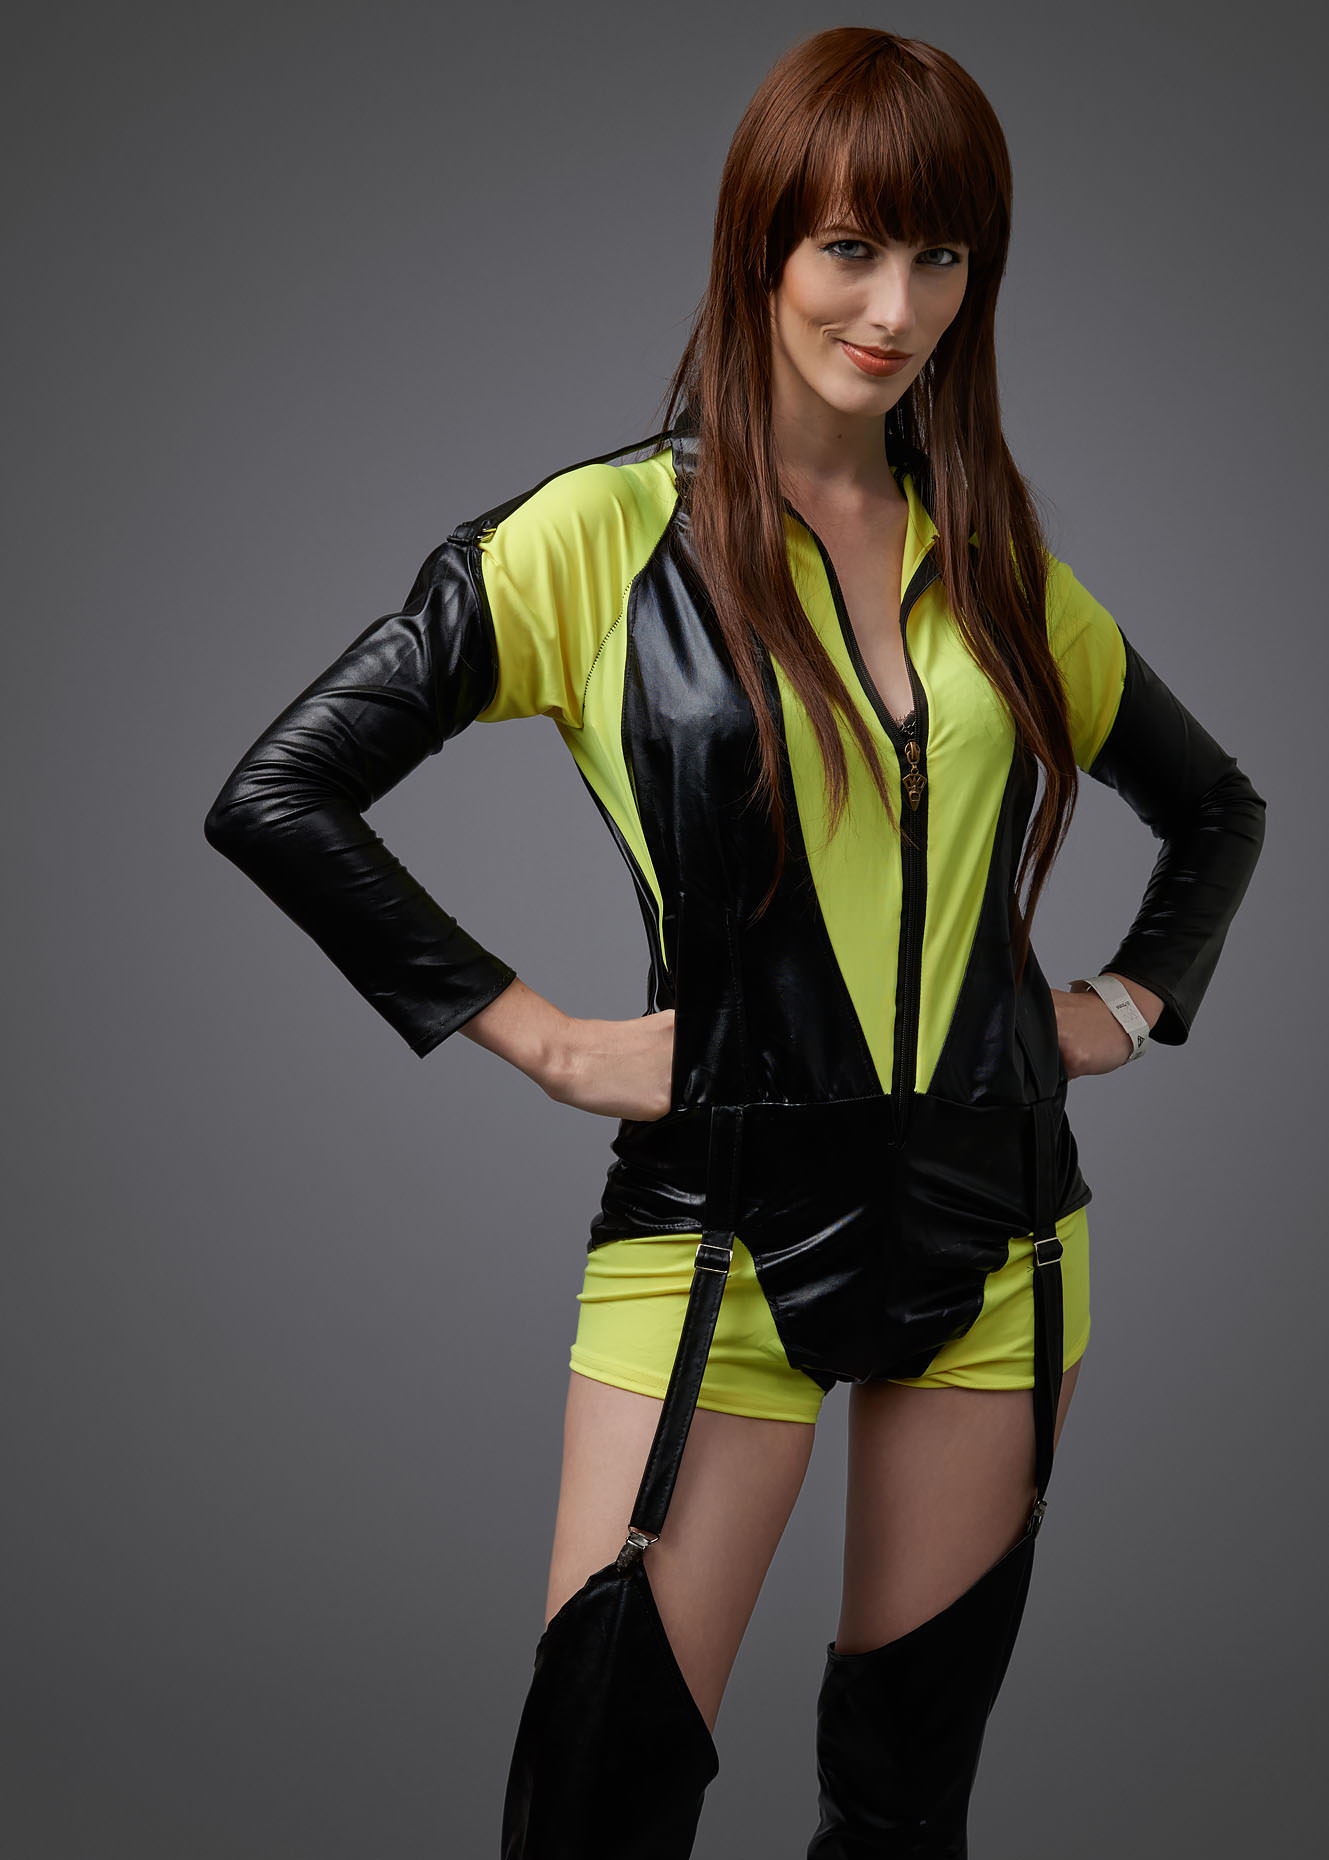 Watchmen Silk Spectre II Cosplay Portrait